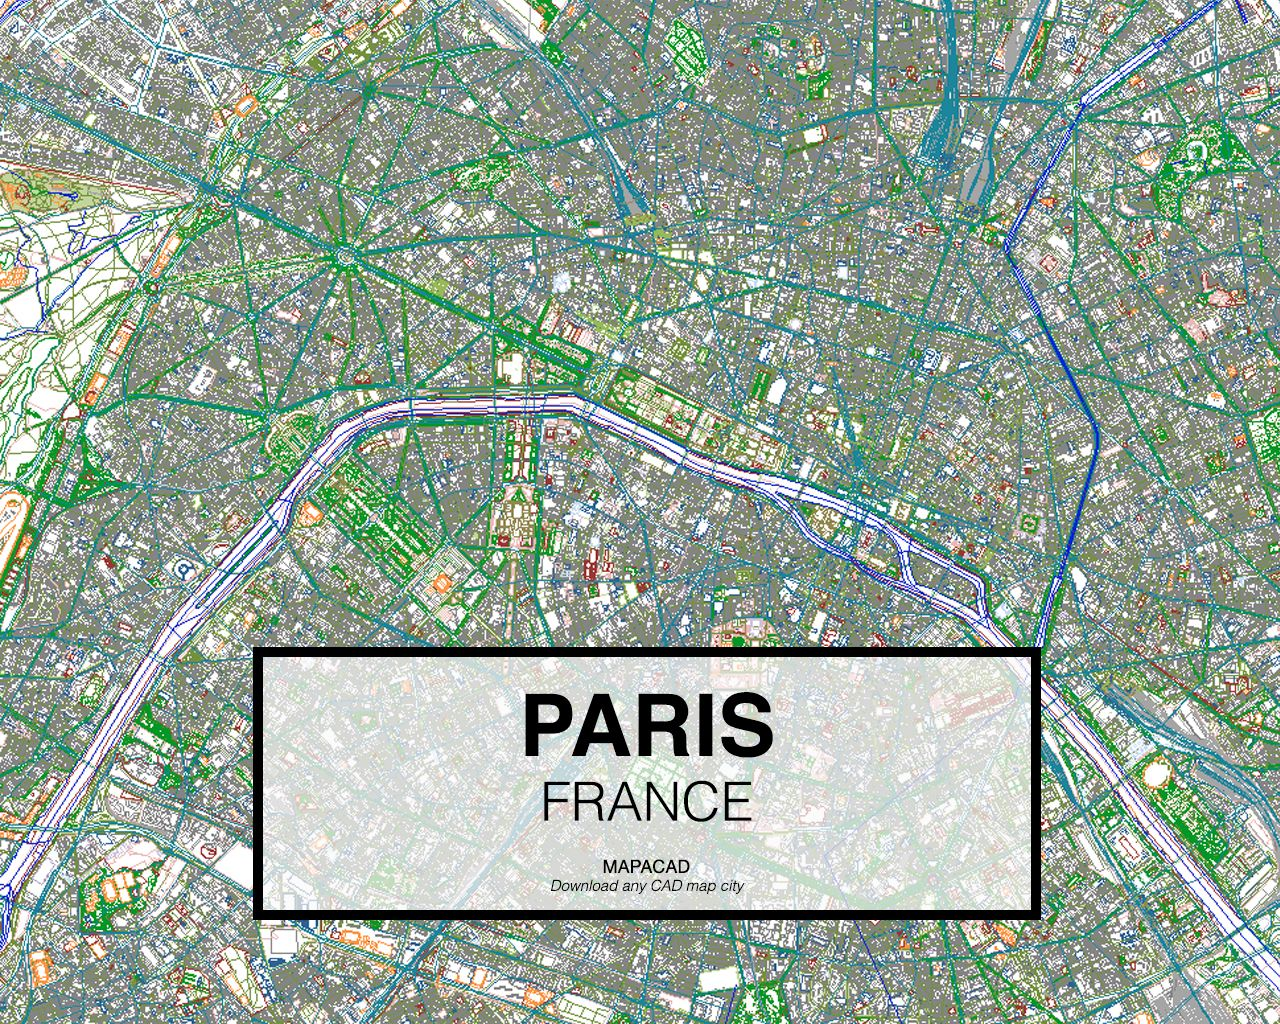 Paris France Download CAD Map in dwg to use in Autocad Maps